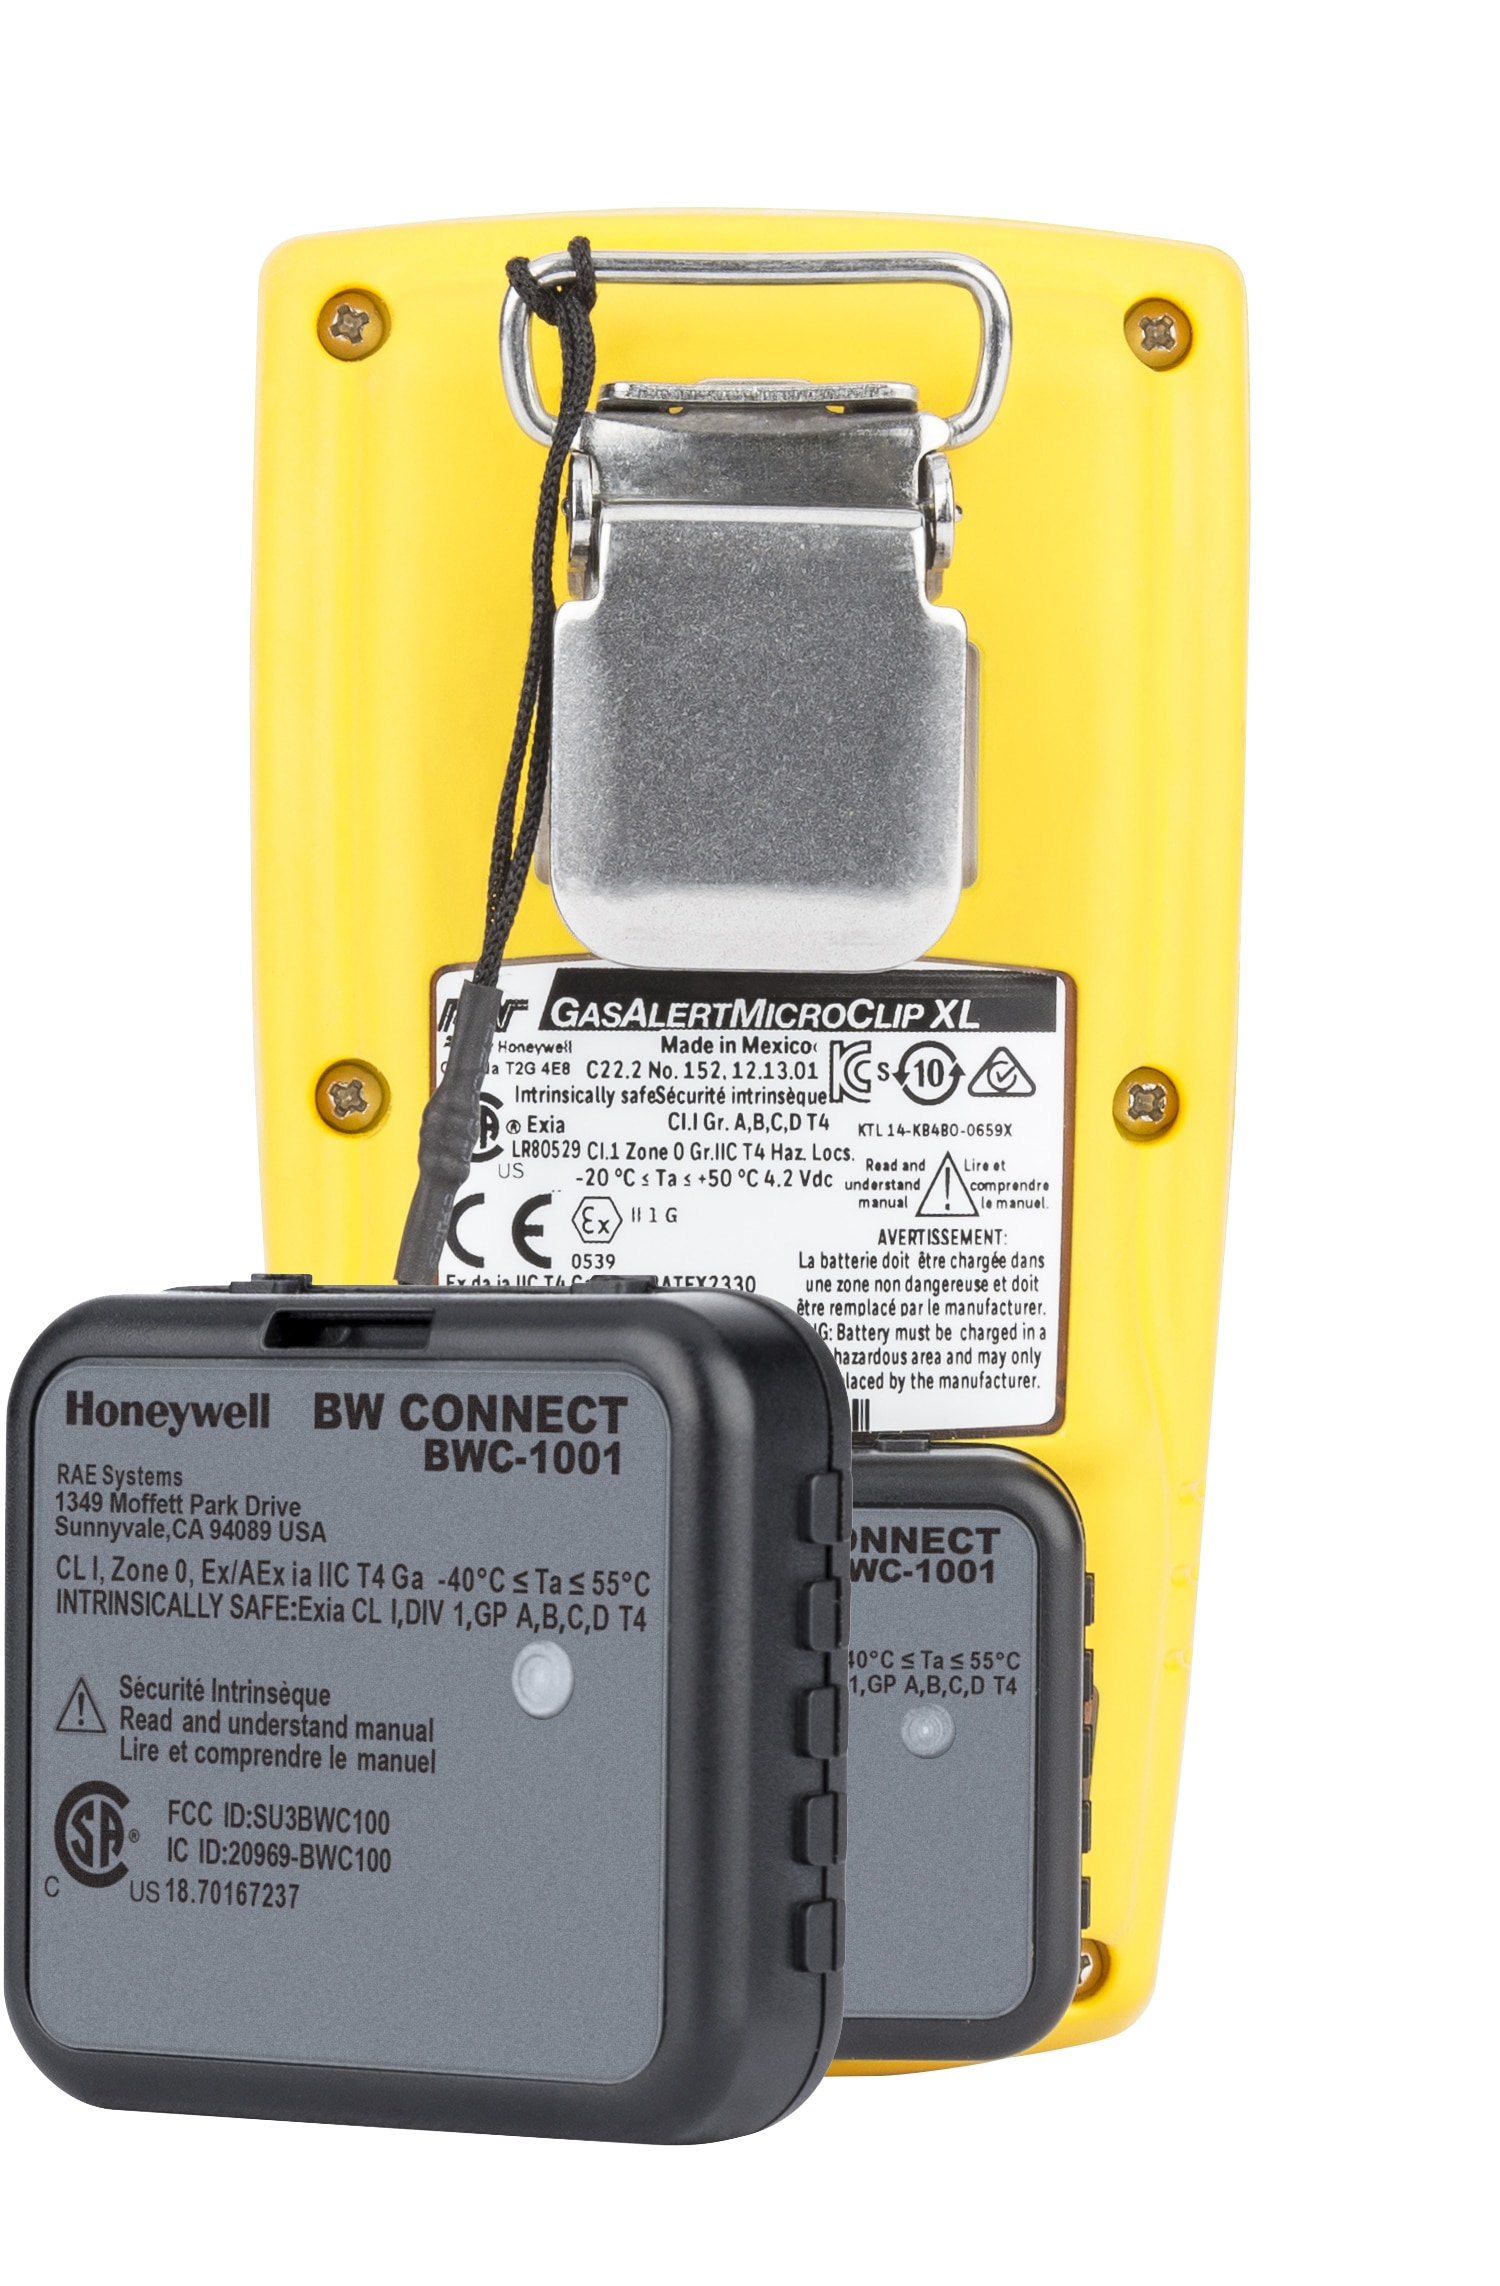 Connect Wc Honeywell Bw Connect For Wireless Gas Detection